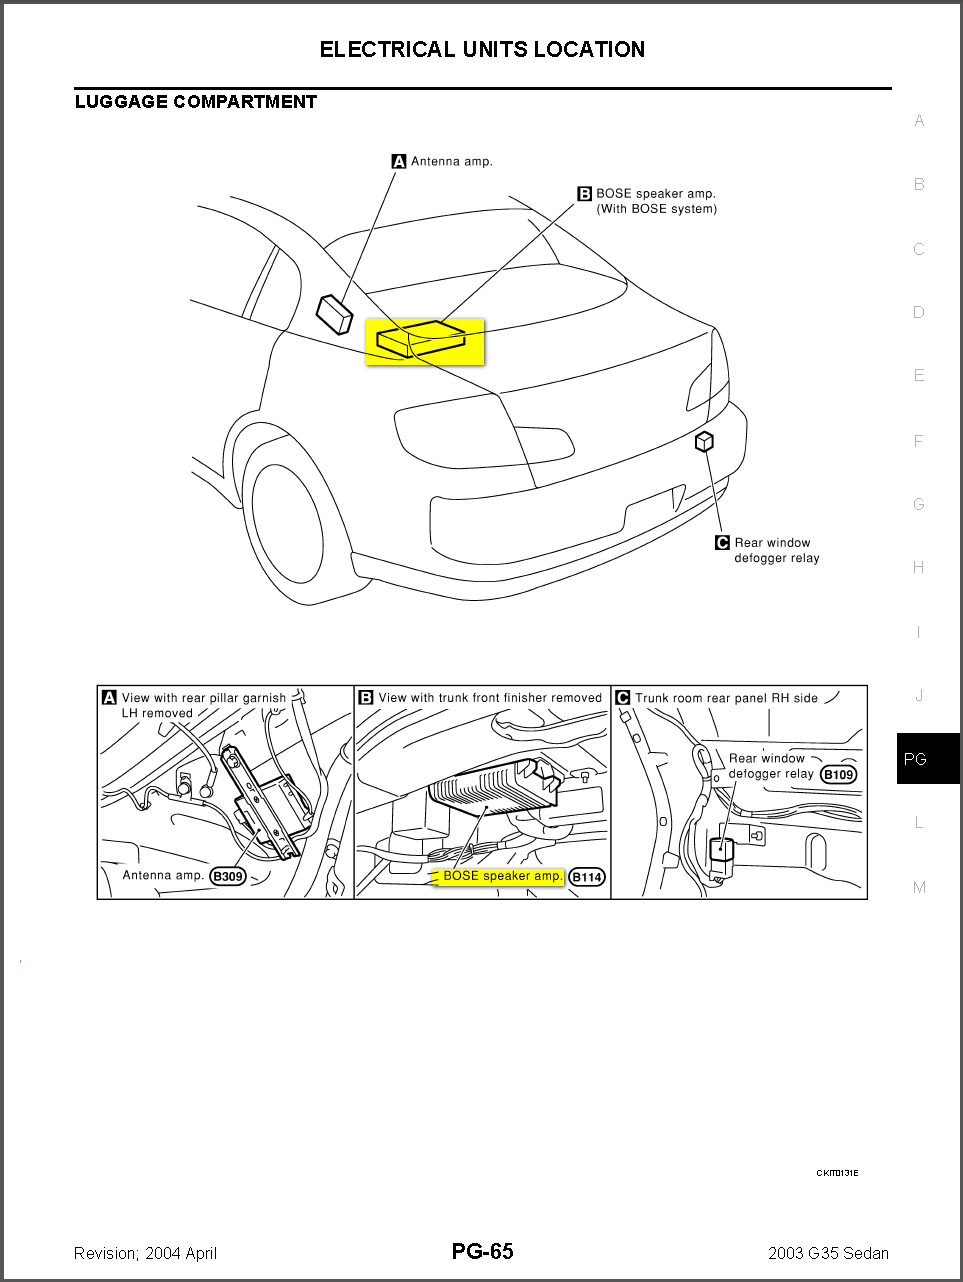 2003 infiniti g35 fuse box diagram eHONhwg g35 fuse box wiring diagram simonand 2004 infiniti g35 coupe fuse box diagram at gsmx.co